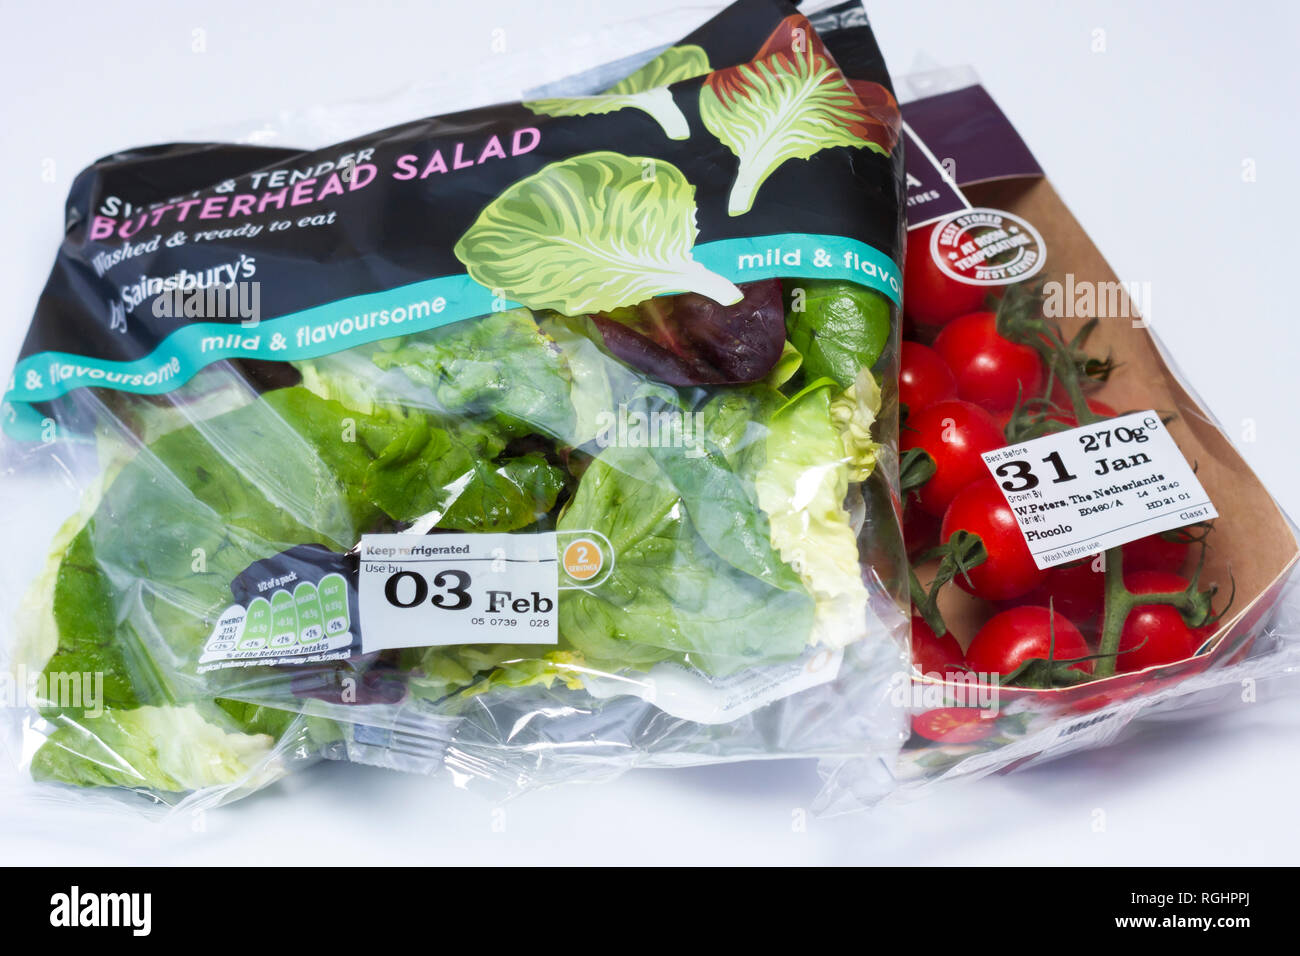 Imported bagged salad and tomatoes. United Kingdom 2019 - Stock Image